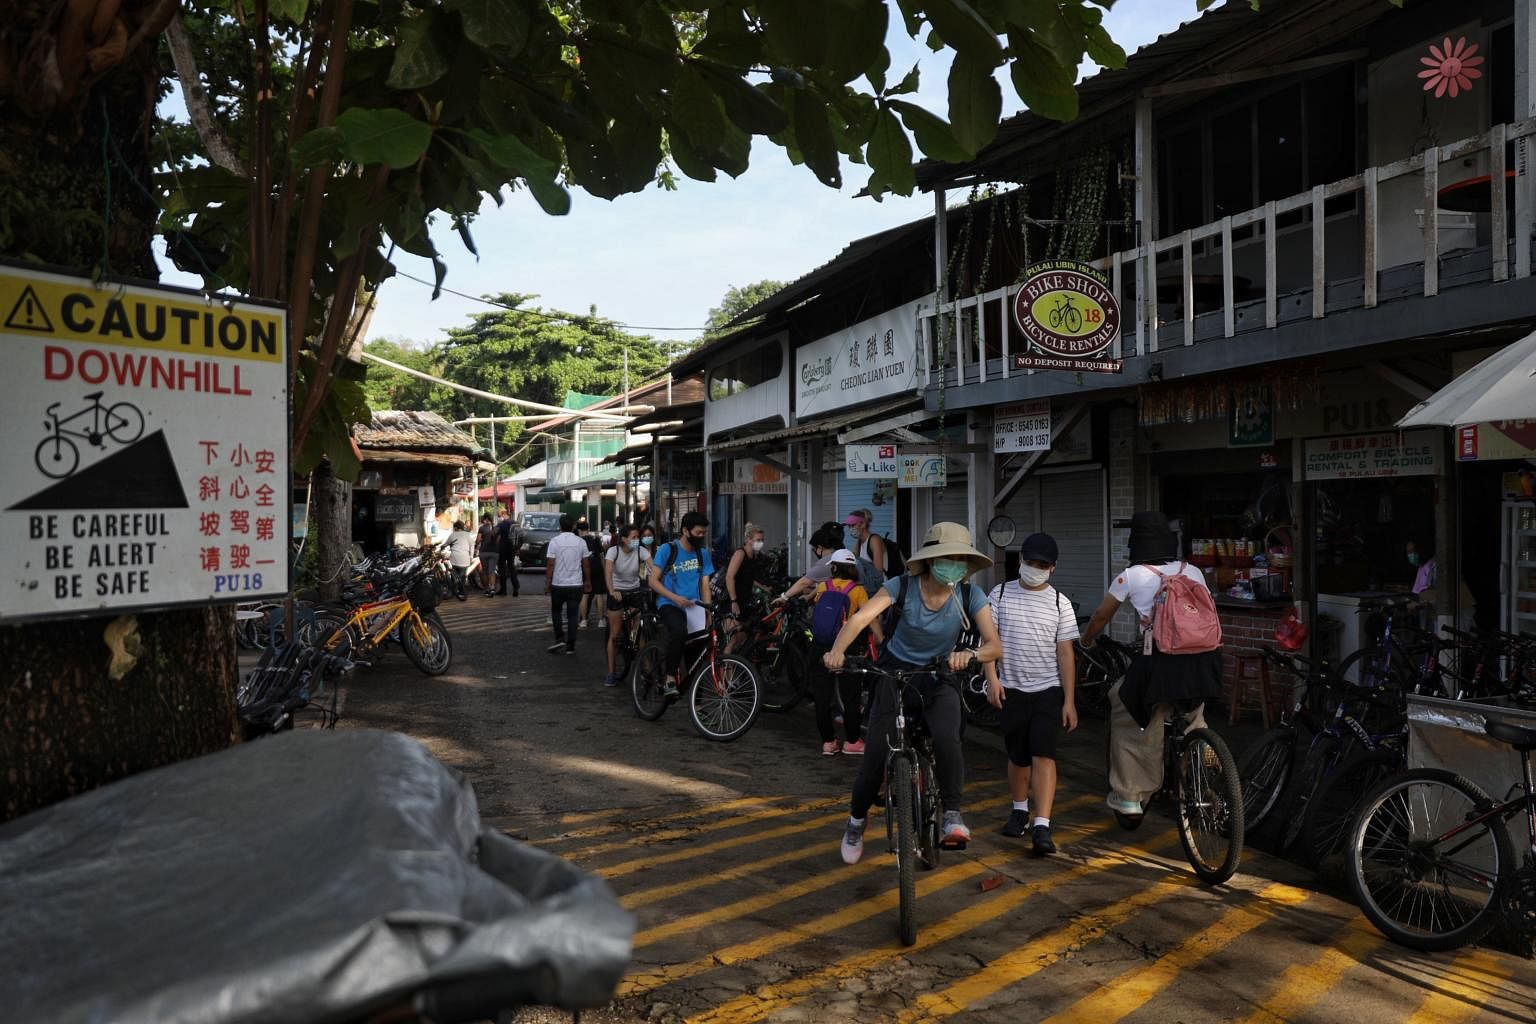 Unwinding In Ubin Marooned In Singapore Locals Flock To Island For Kampung Vibes And Nature Trails Singapore News Top Stories The Straits Times